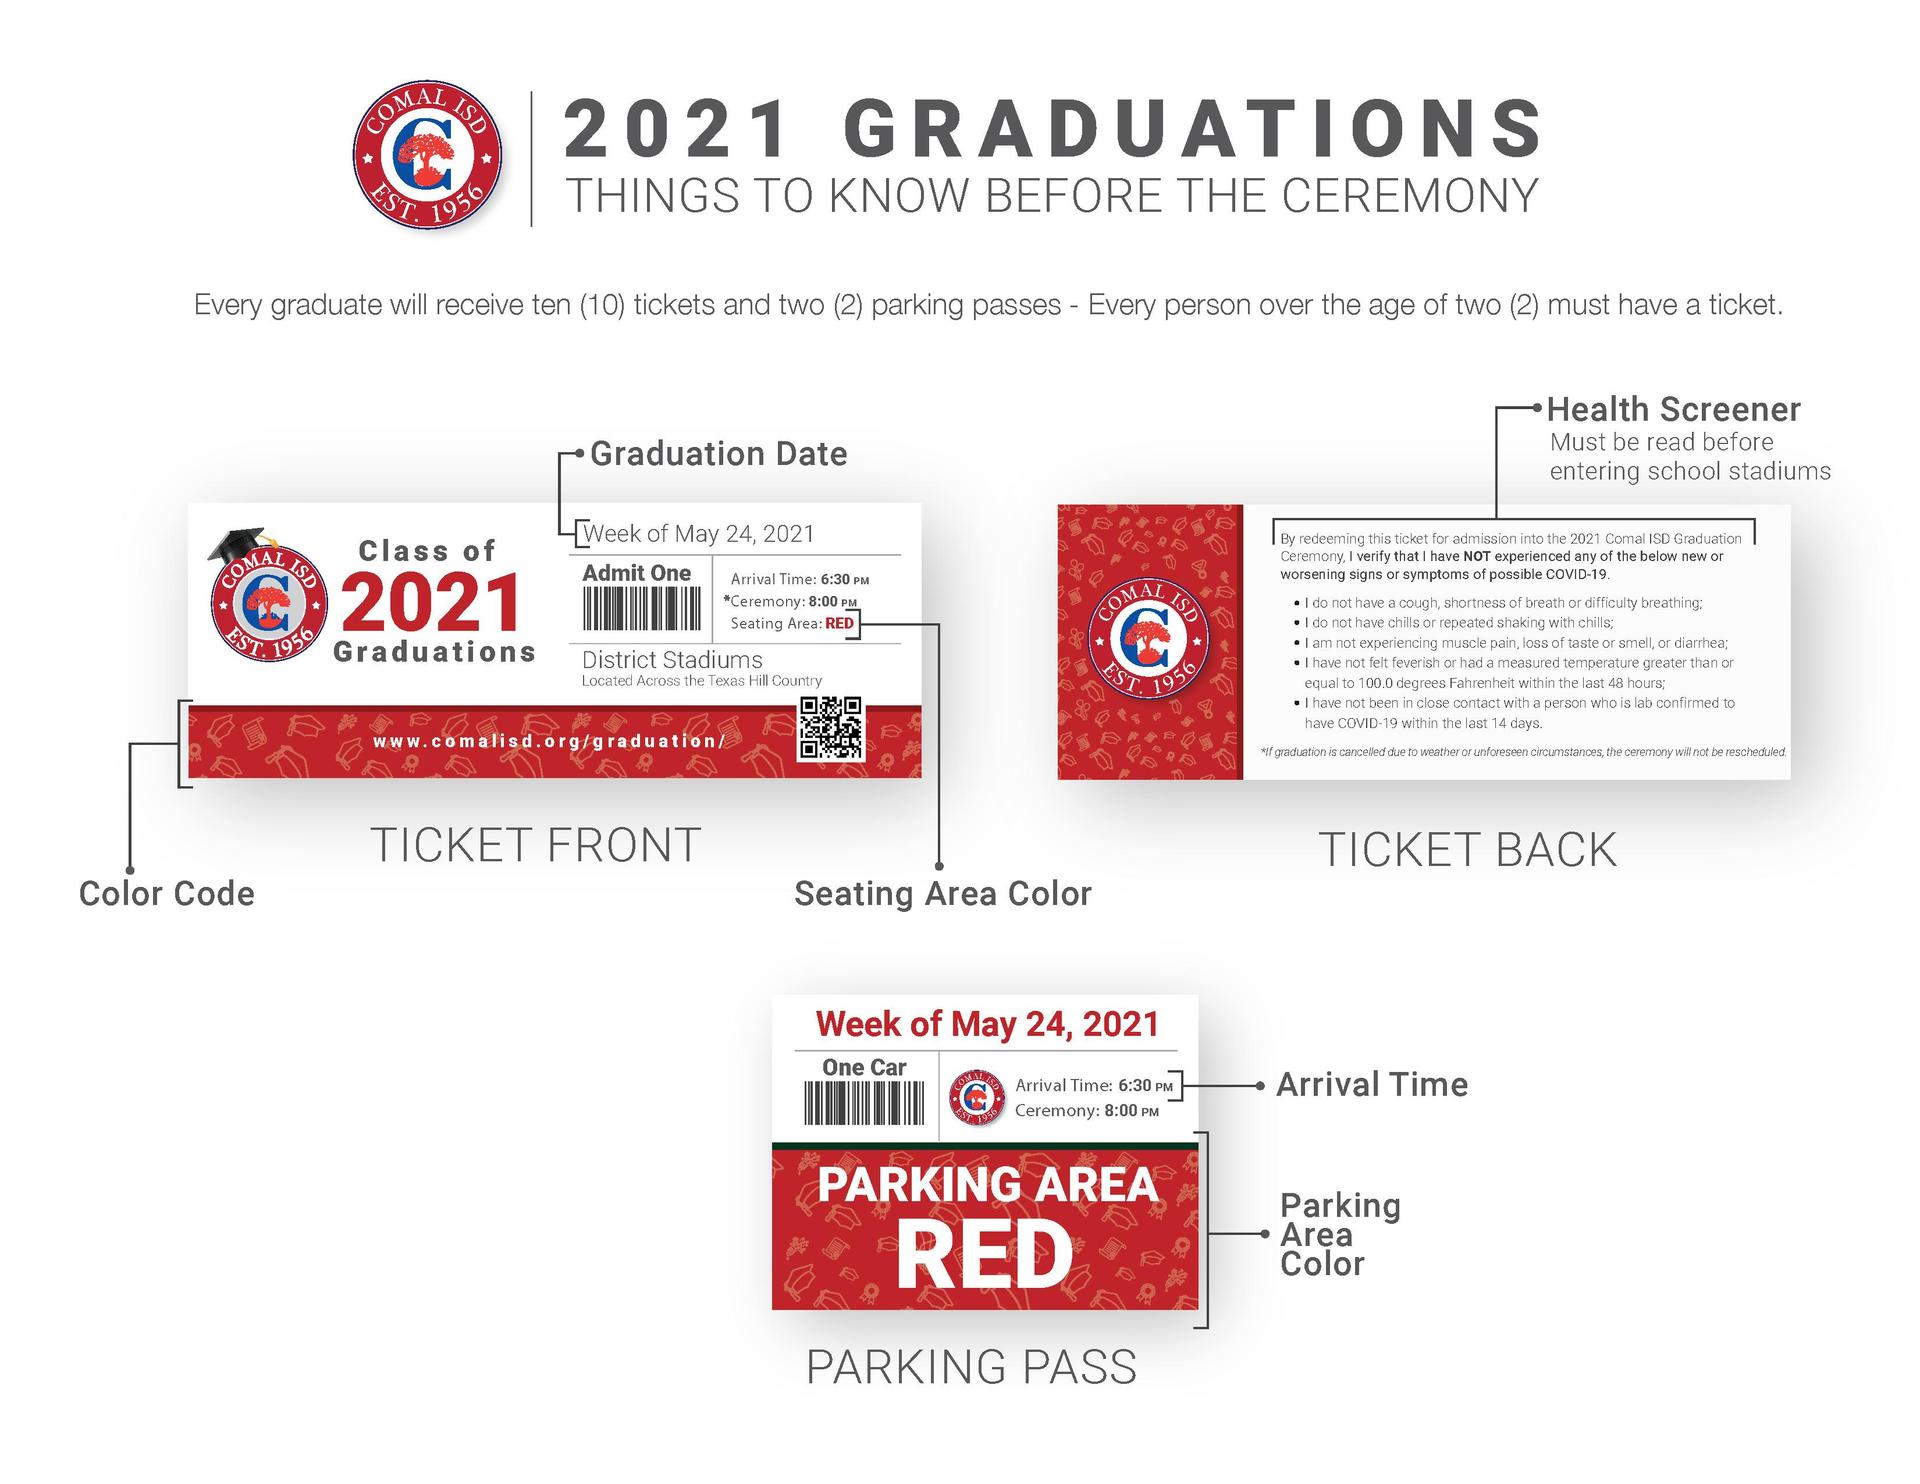 Explanation of Tickets